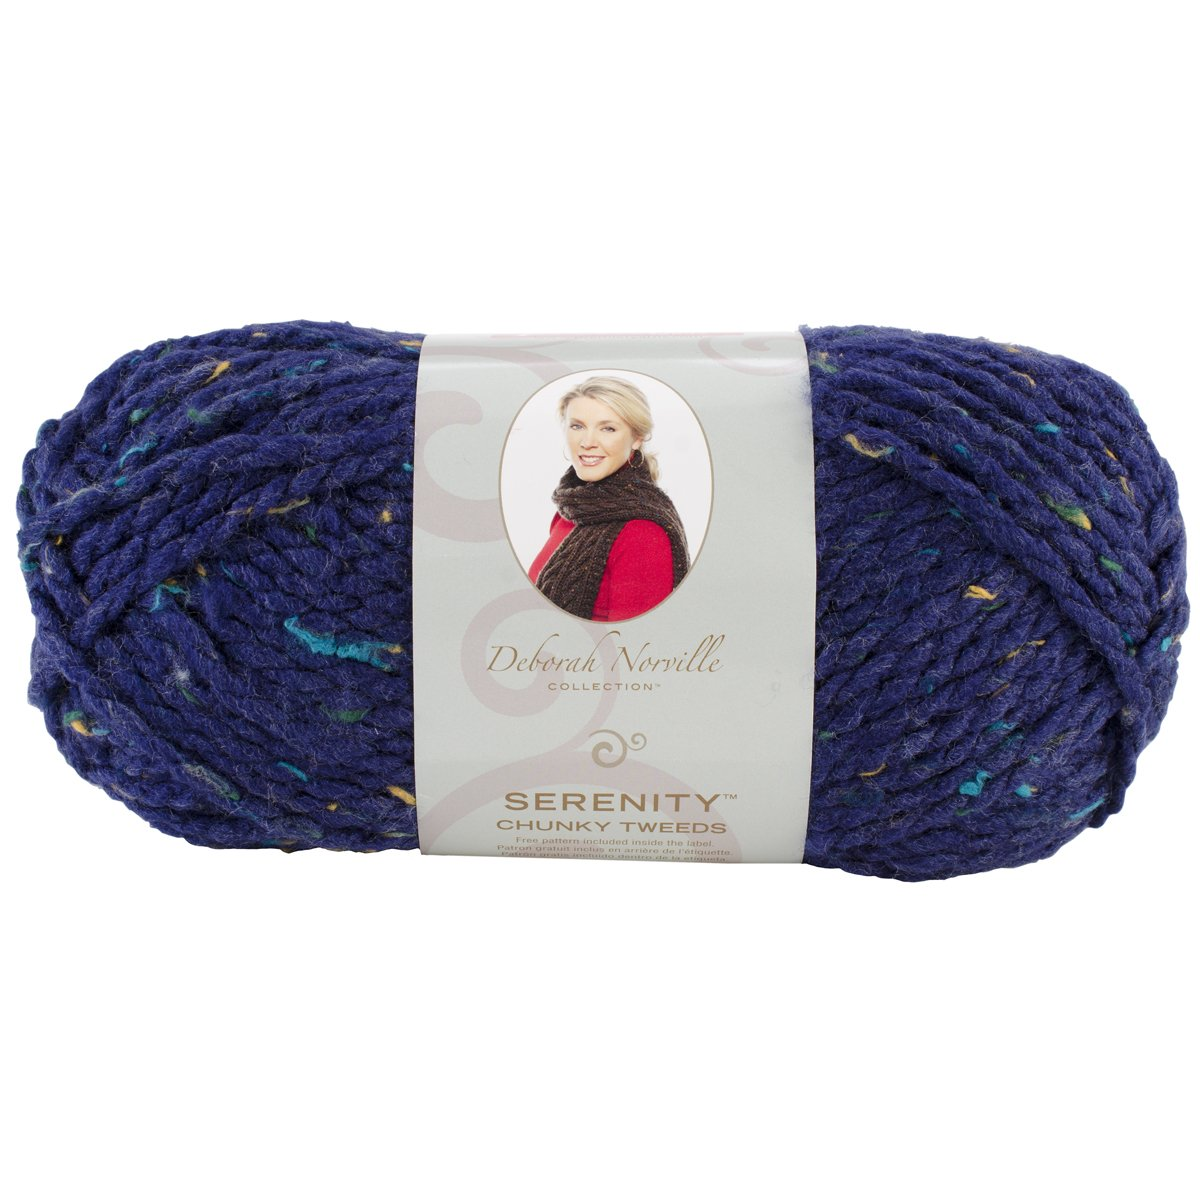 Deborah Norville Collection Serenity Chunky Tweed Yarn-Eclipse by Premier Yarns B004I4WQFQ